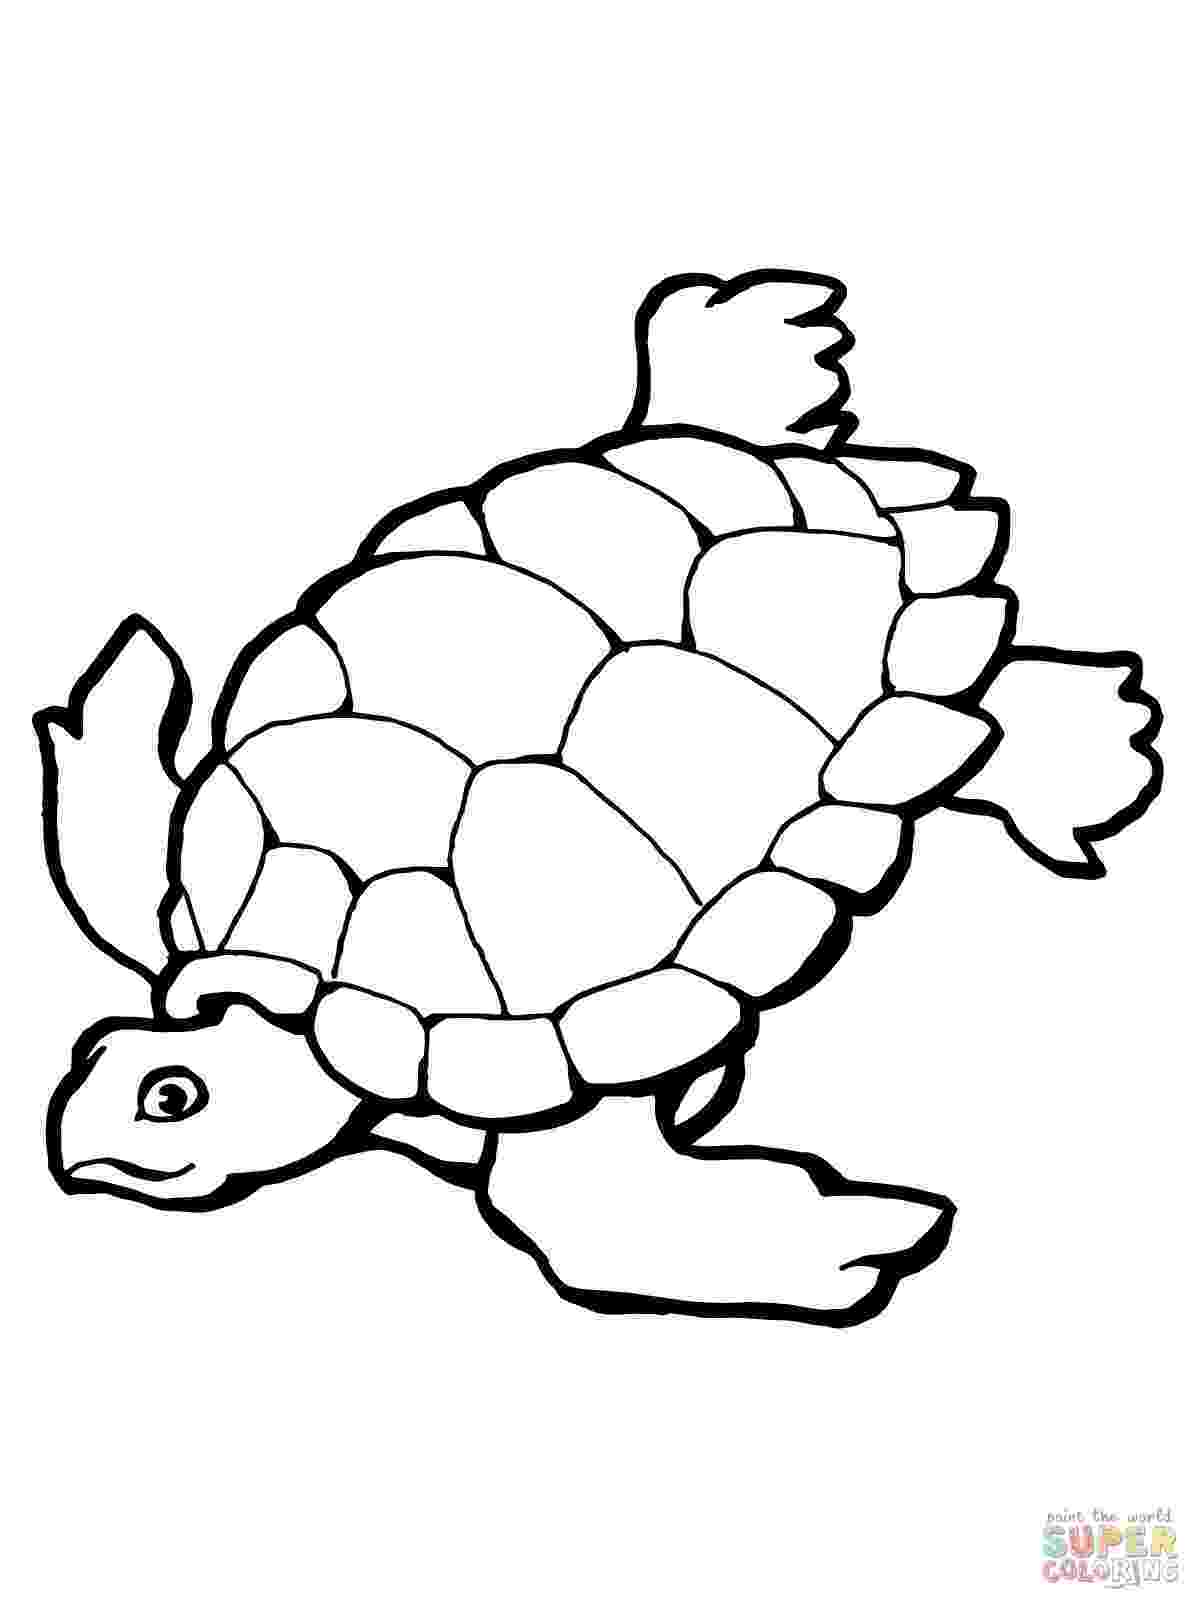 coloring page of turtle sea turtle coloring pages to download and print for free coloring page of turtle